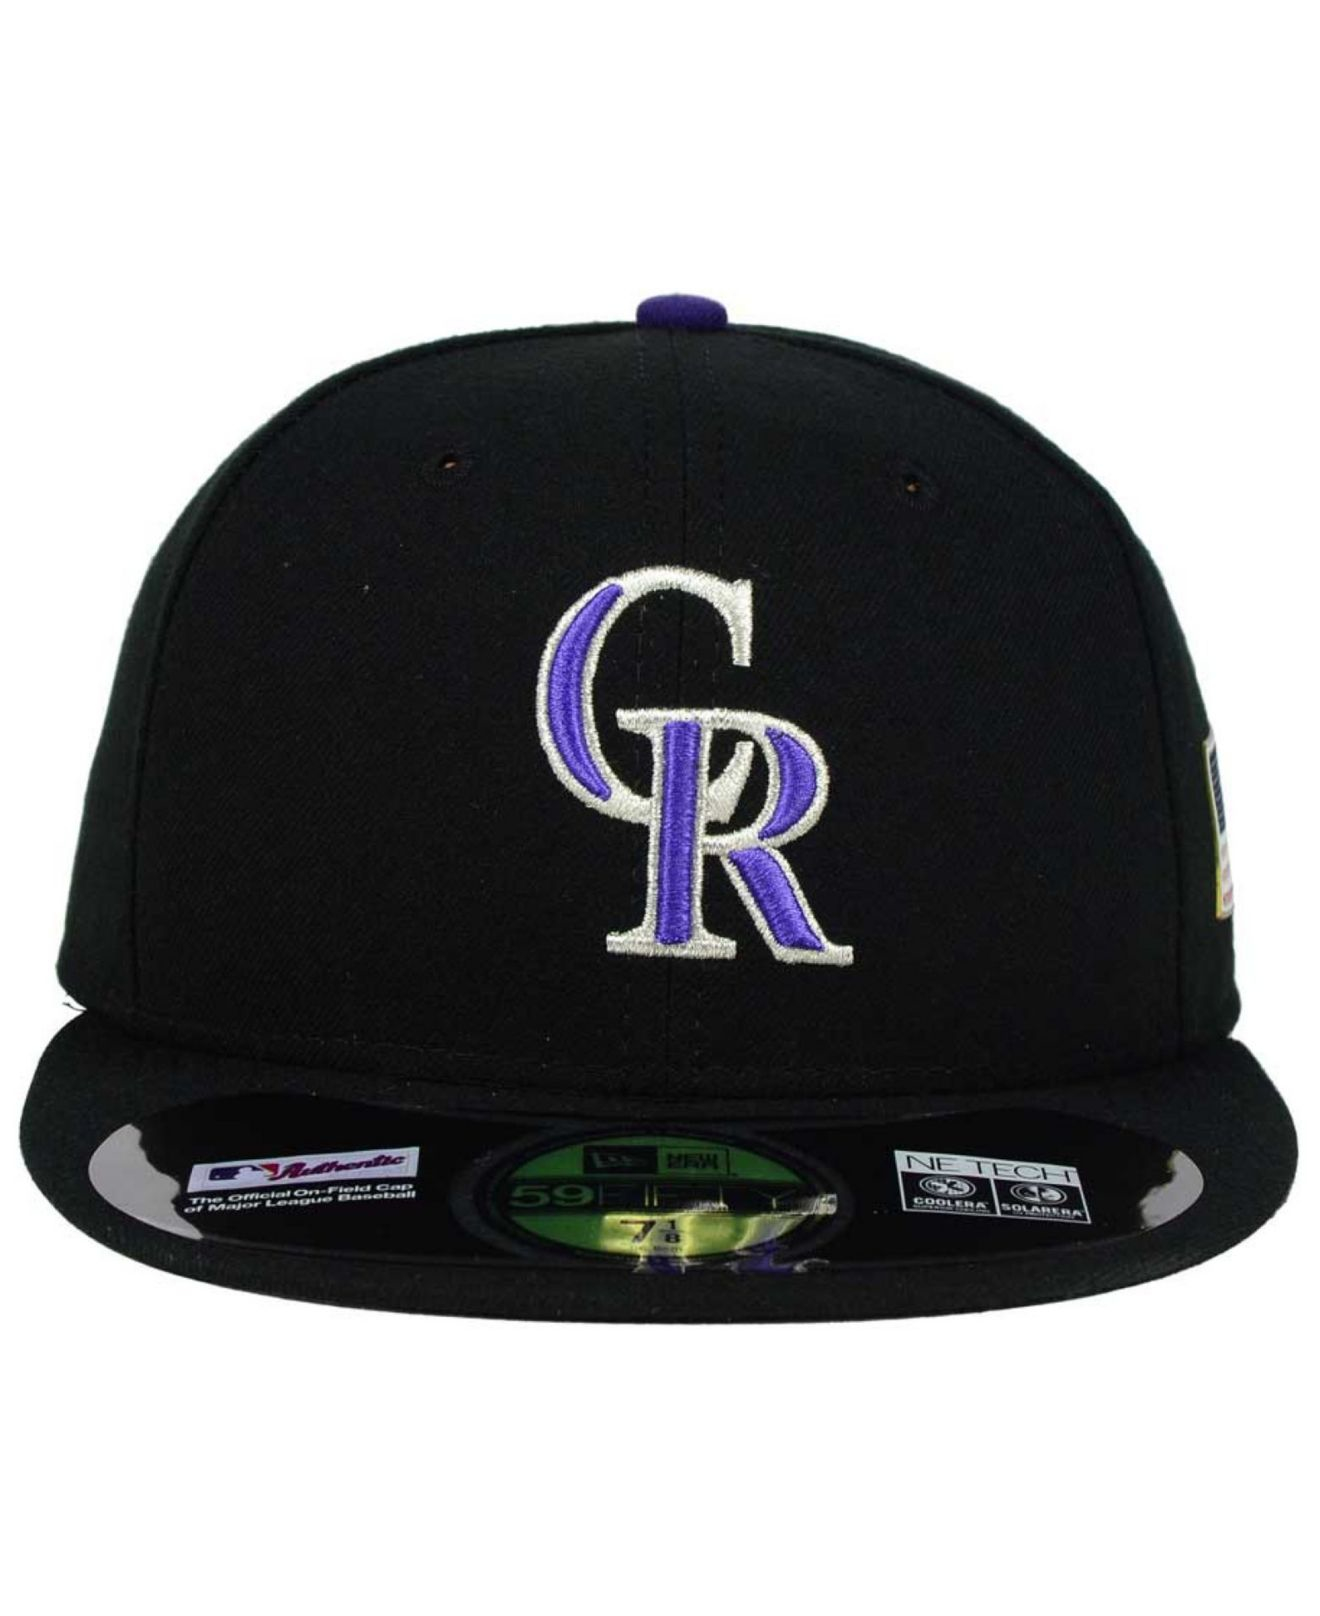 super popular abc97 e52af Lyst - KTZ Colorado Rockies Ac 9-11 Patch 59fifty Cap in Black for Men